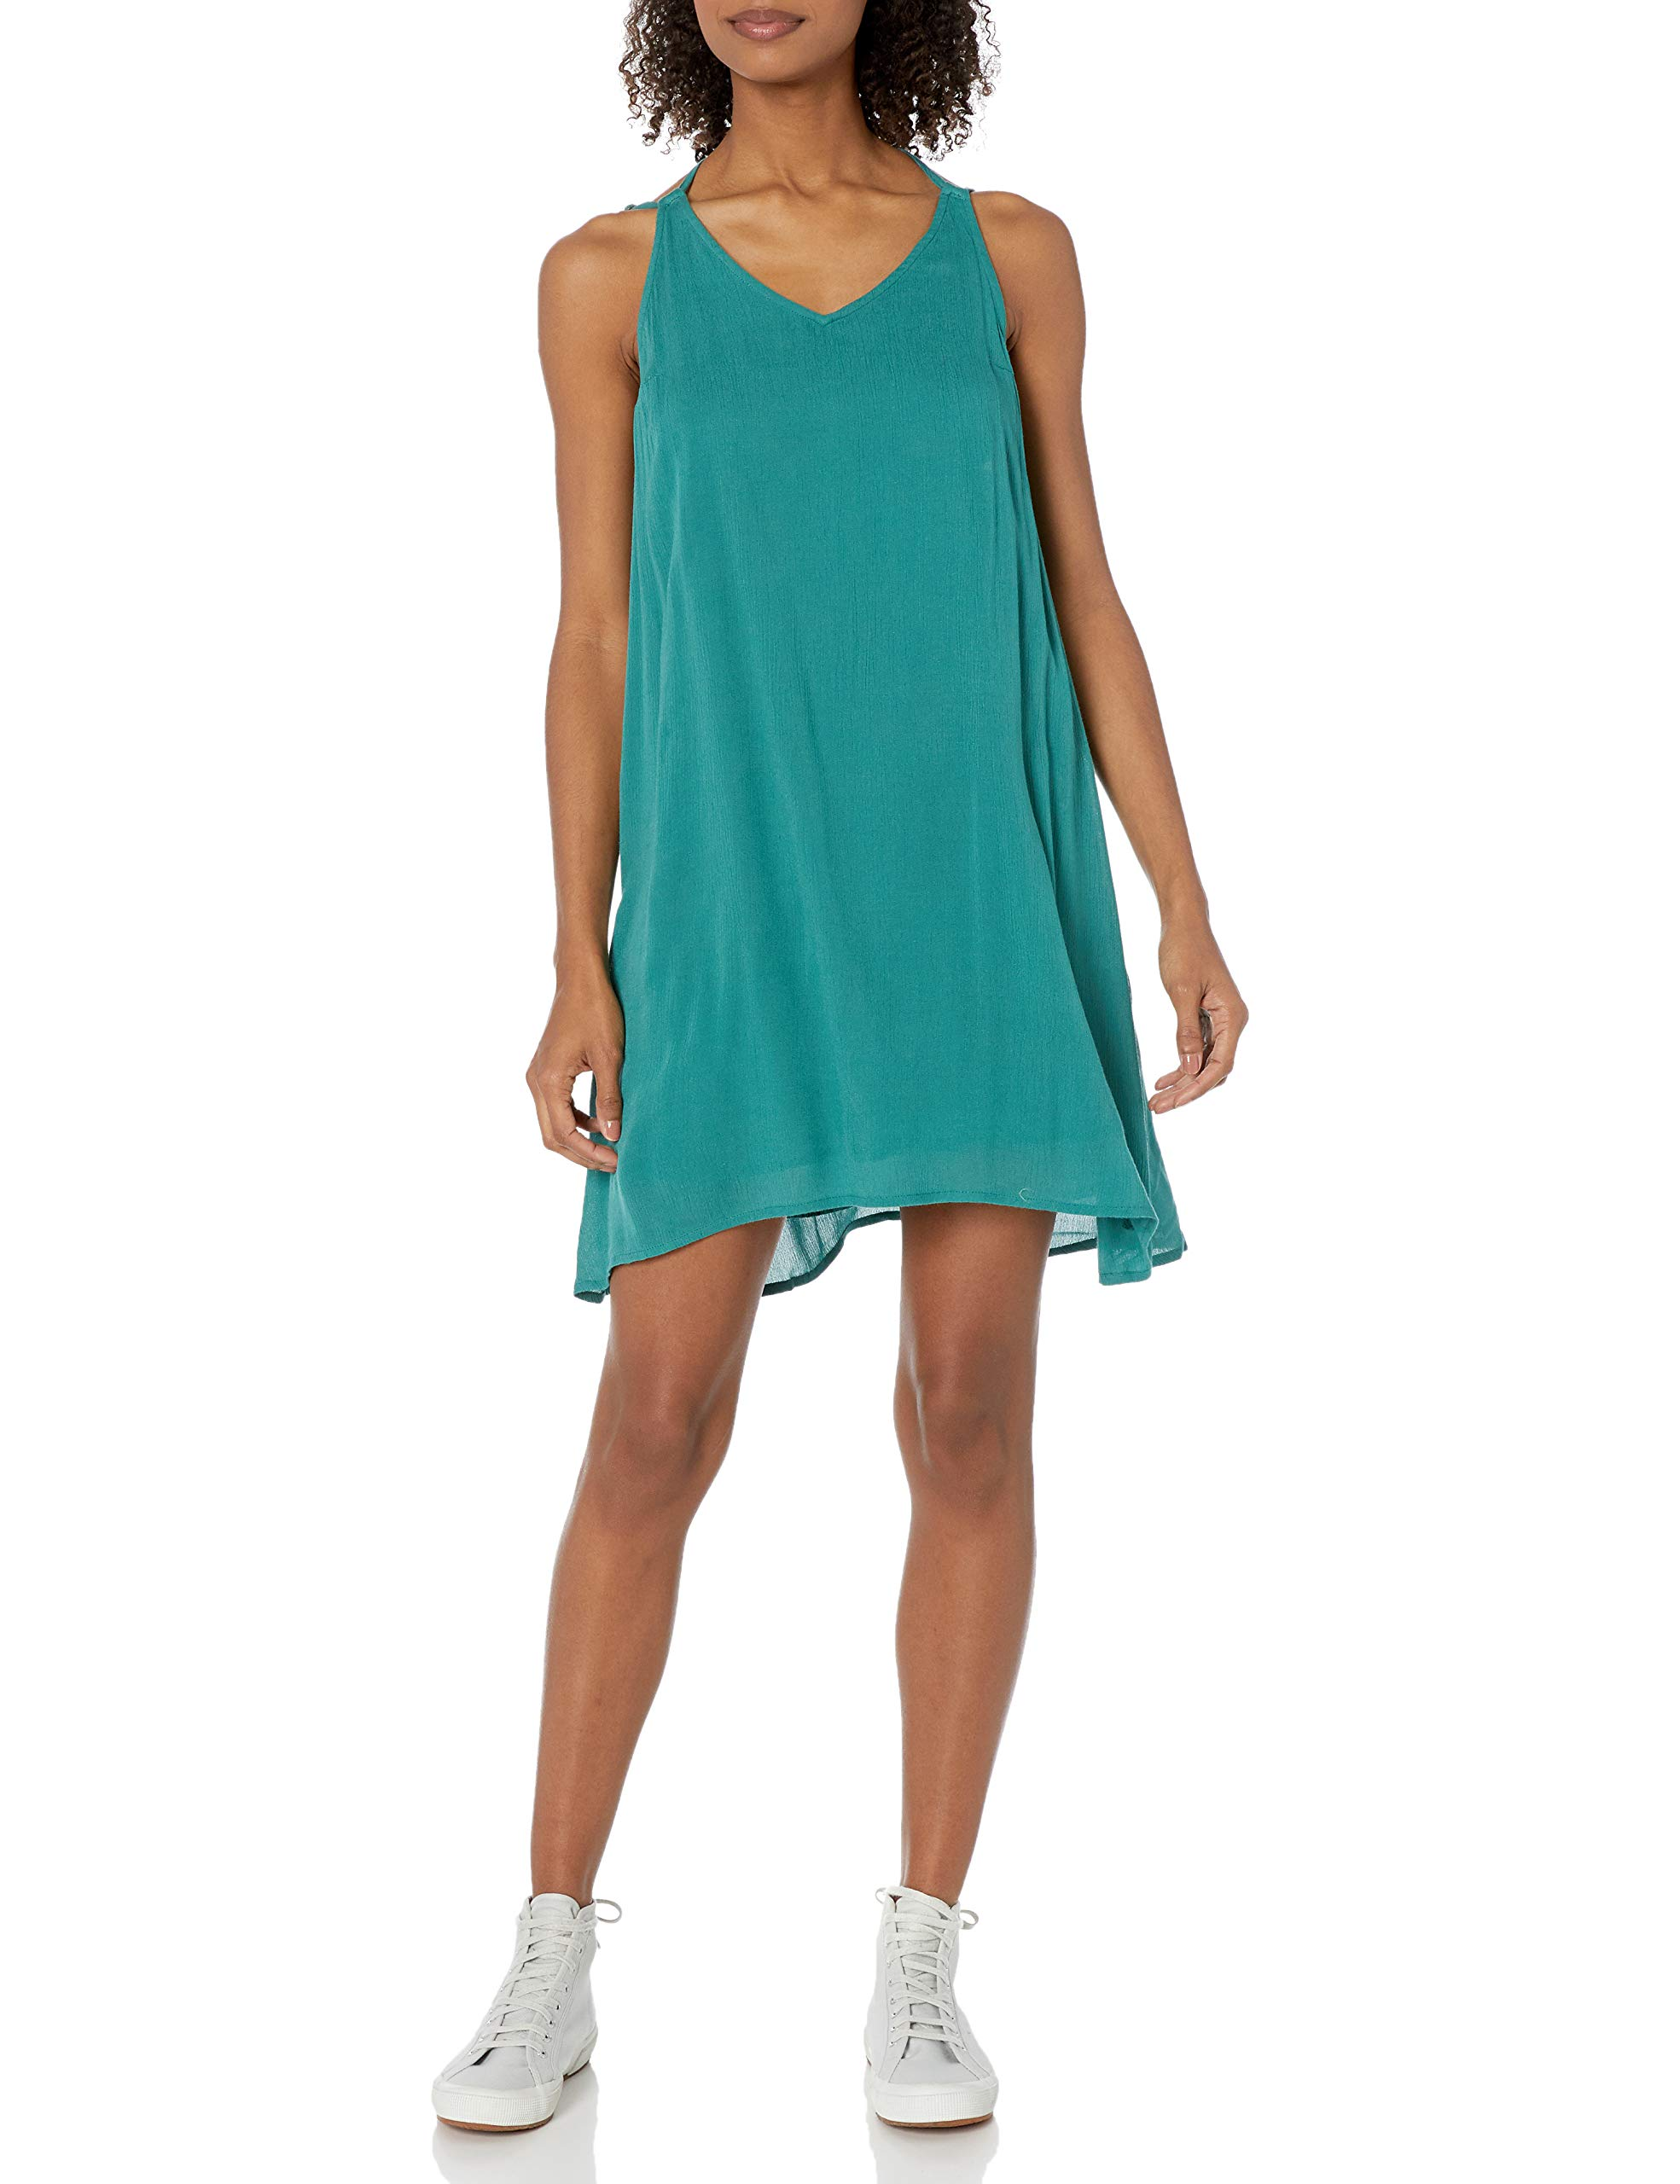 Roxy Women's Dome of Amalfi Dress